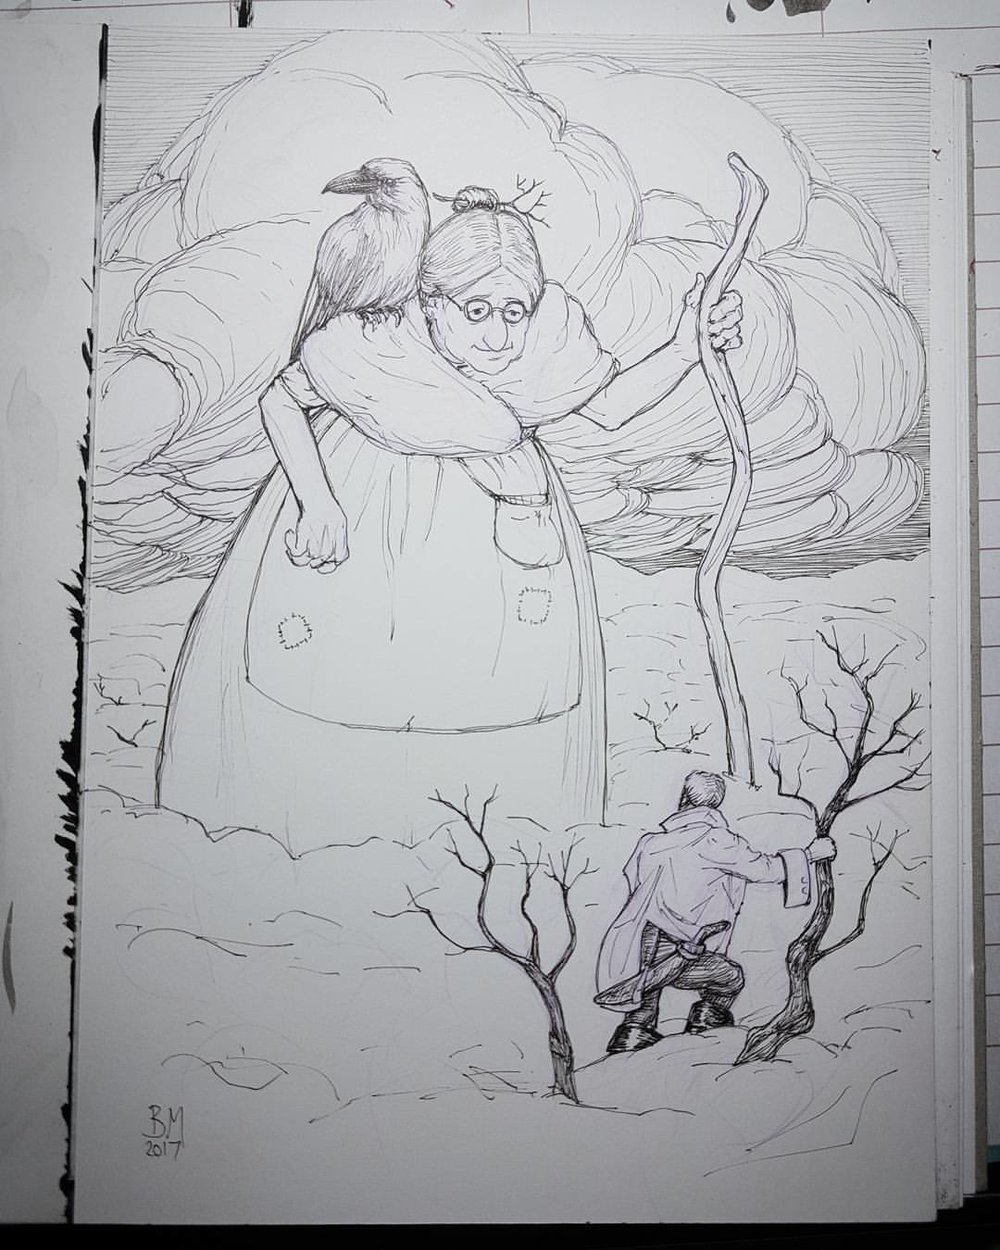 """Inktober prompts were """"crooked, screech and gigantic"""".    With crooked staff in one hand and a screeching raven on her shoulder, the giantess nimbly strode through the forest towards him. At that moment he was reminded of his grandmother walking through fields of wheat looking for weeds to pull out.. """"SREEEEEEEECH!!"""" """"Don't mind him,"""" said the giantess, """"he hasn't had his supper.""""     Before I start out on my inks I usually sketch out in a Prismacolor Col-erase pencil either a blue or as used in this case lavender. Inks are a 0.05 Copic multiliner pen on Bristol.  #inktober #inktober2017 @jakeparker @inktober @changelingartist #penandink #illustration #australianartist #melbourneillustrator"""